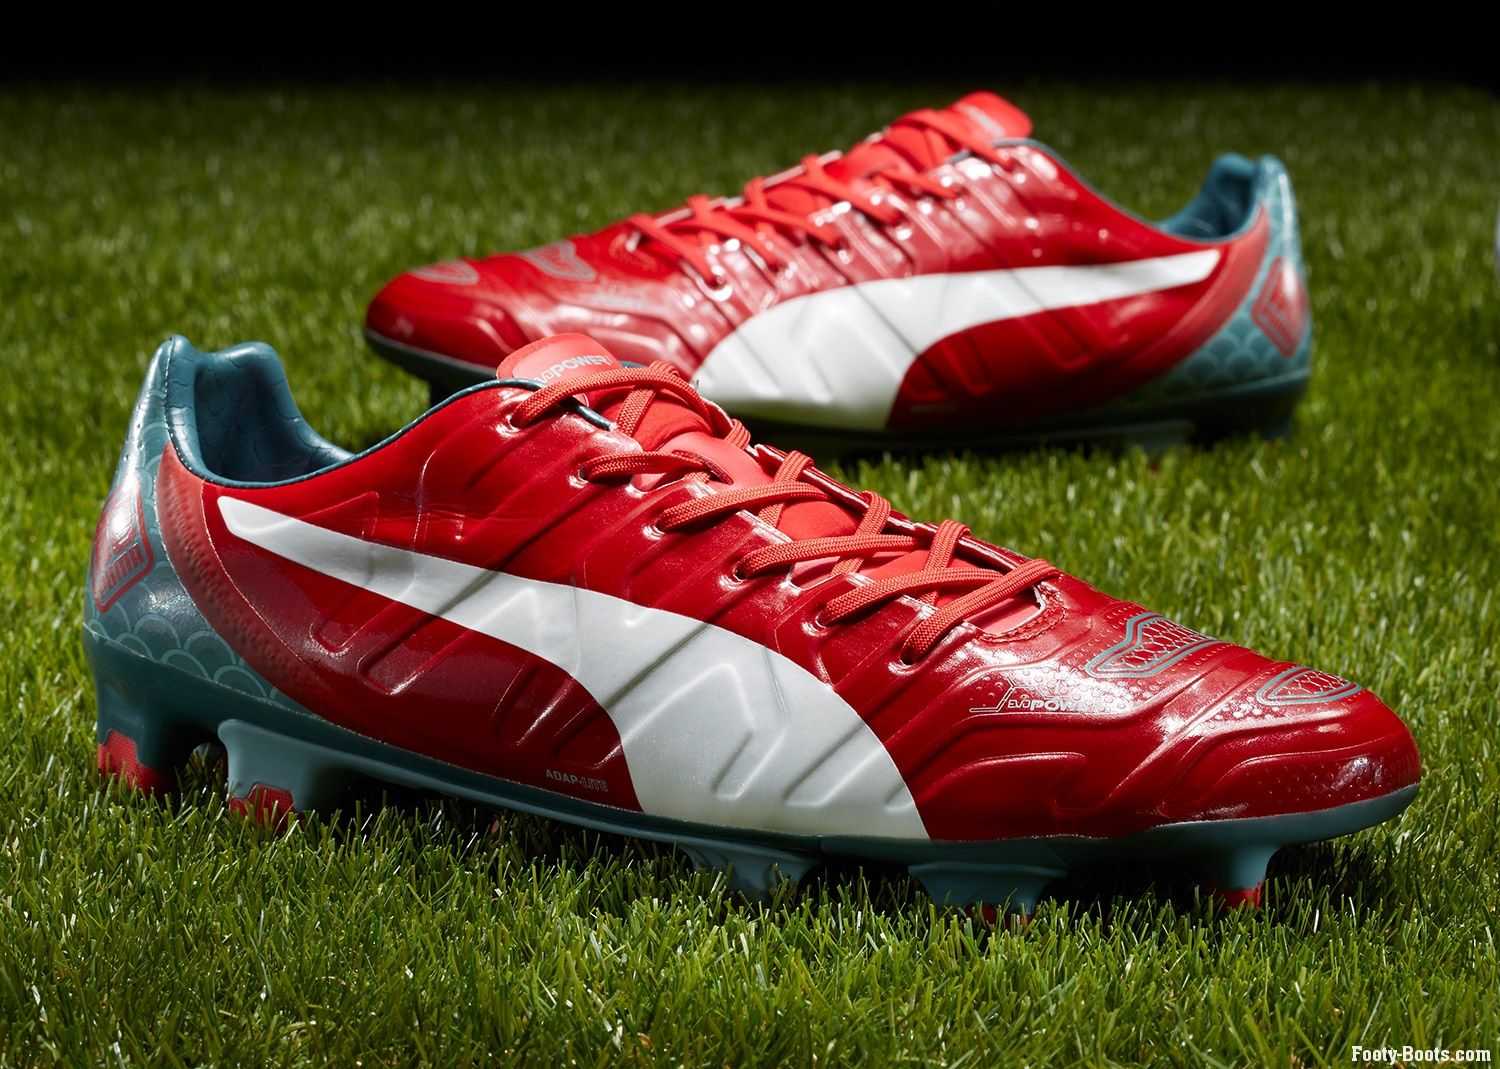 dd3d20668b60 Find out everything you need to know about the Puma evoPOWER football boot  - colourway - High Risk Red, White, Sea Pine >>